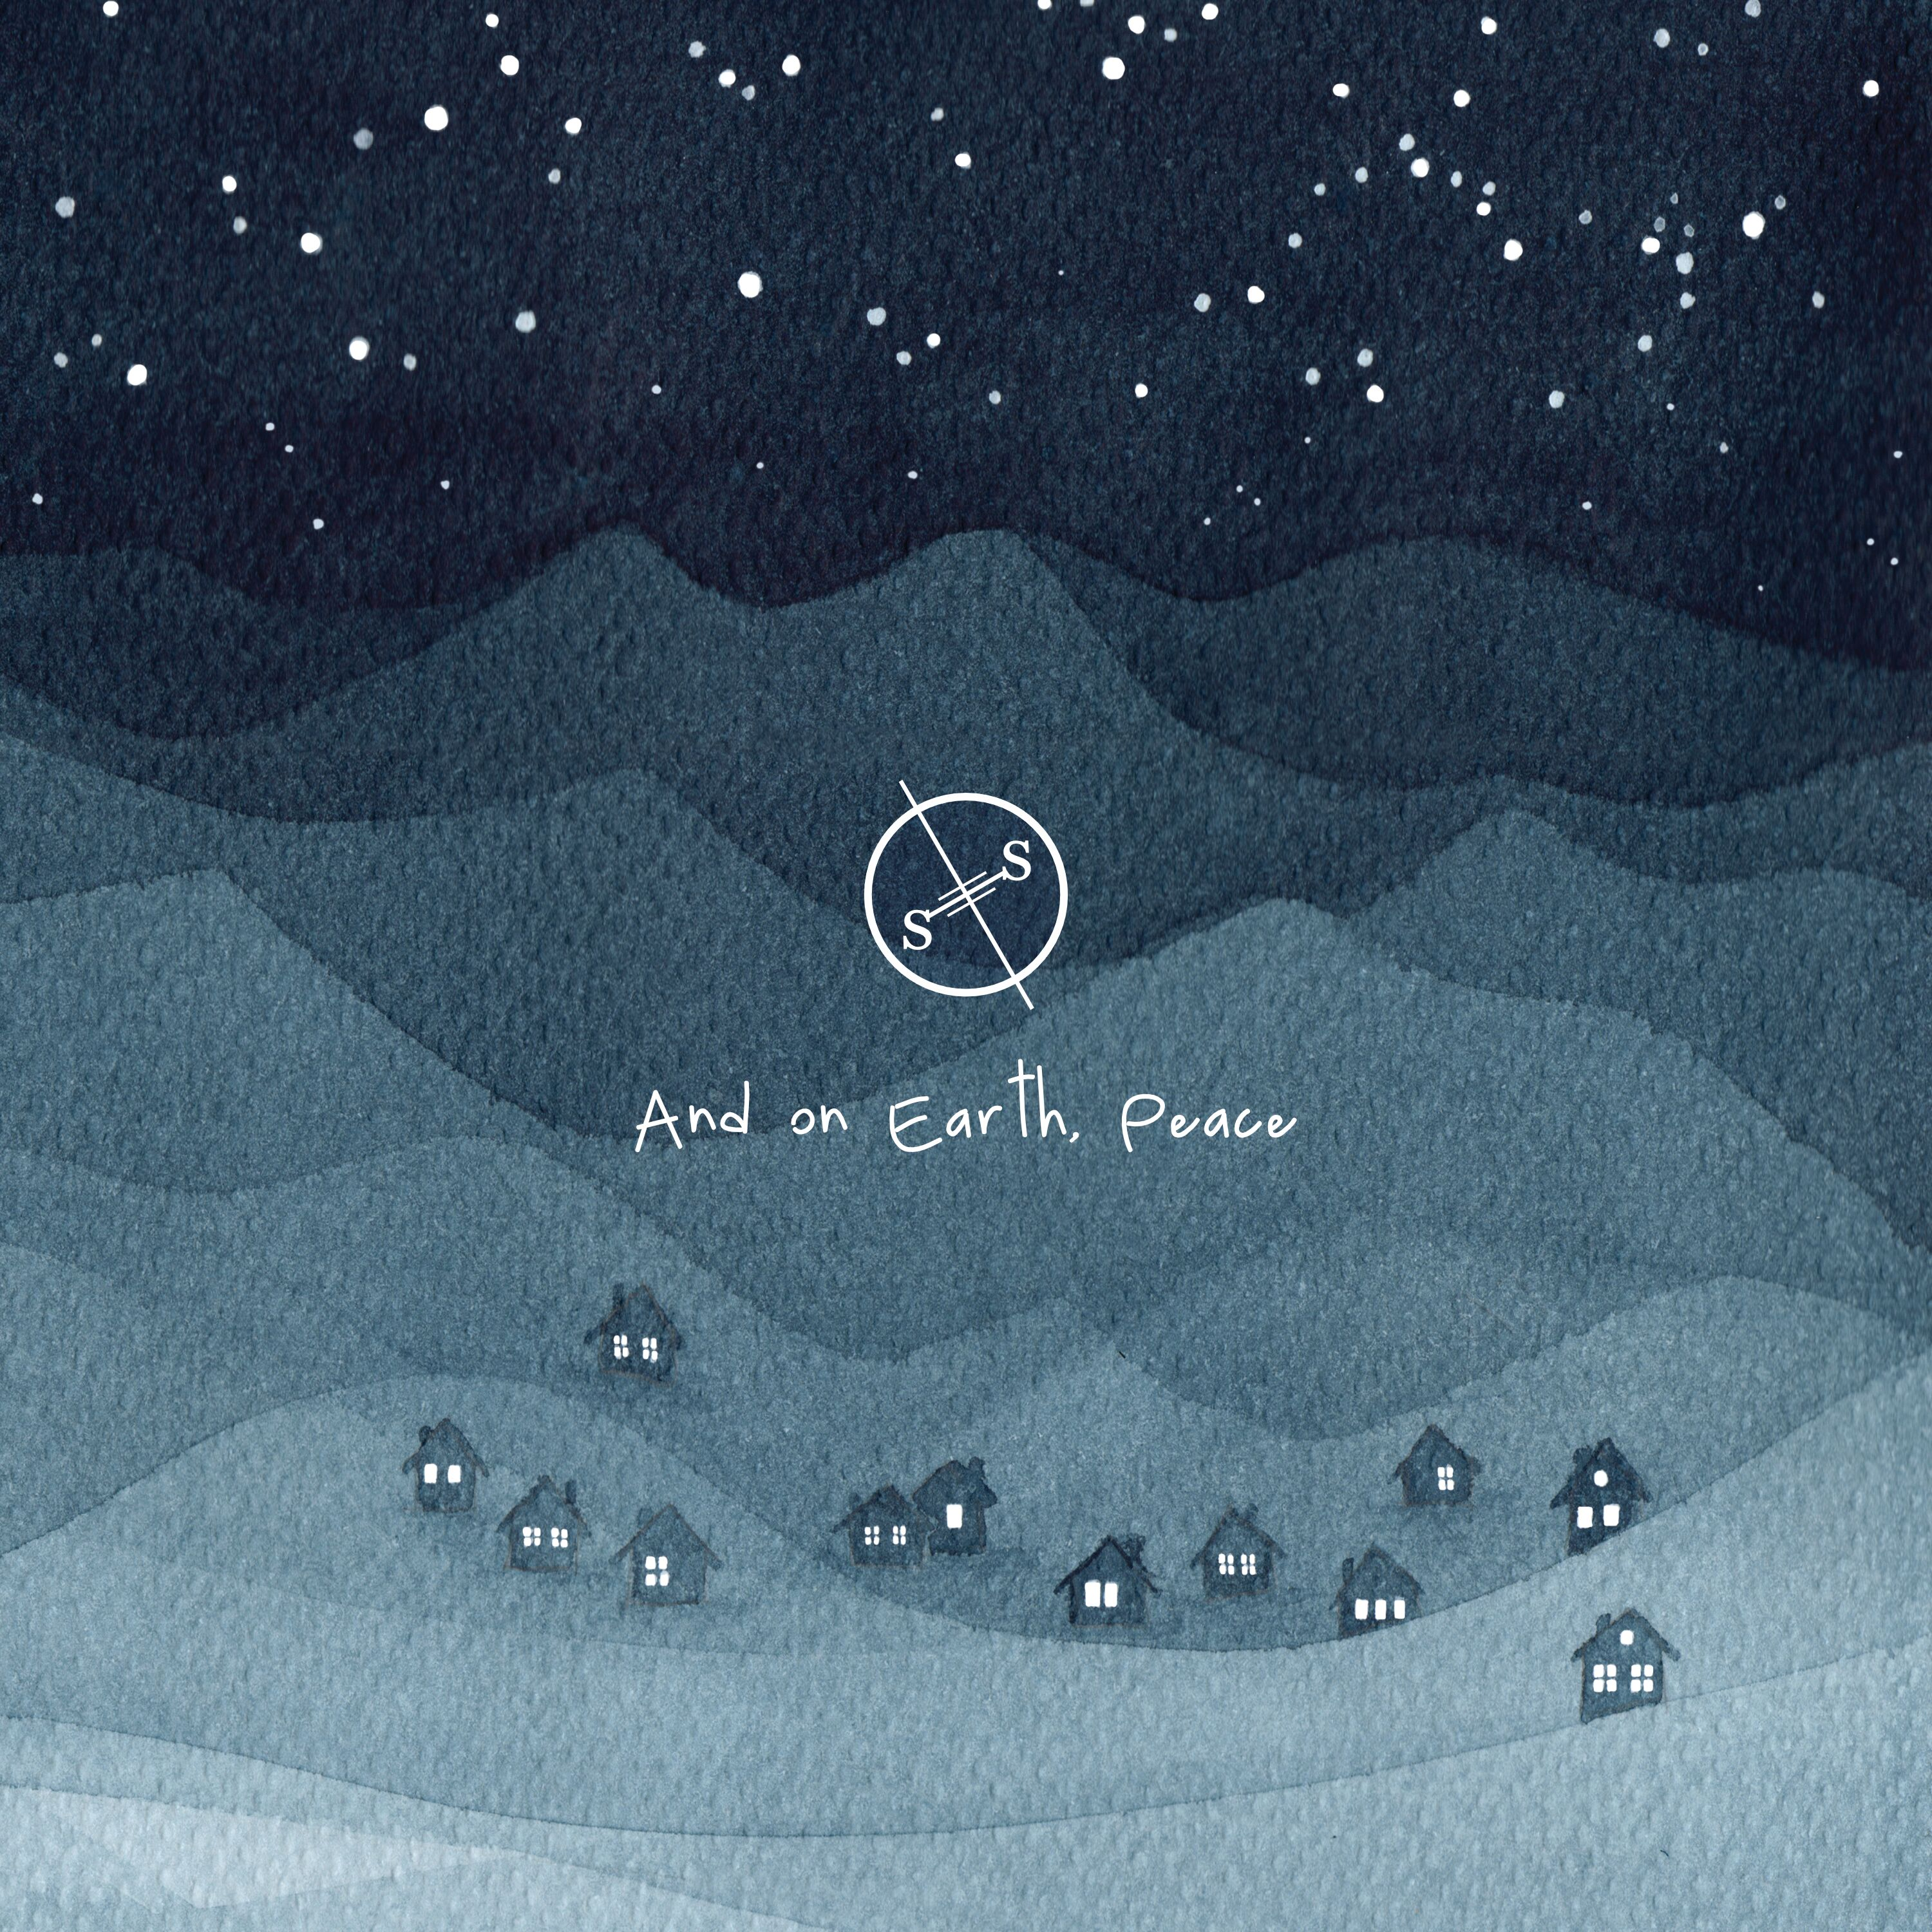 Salt Of The Sound - And on Earth, Peace